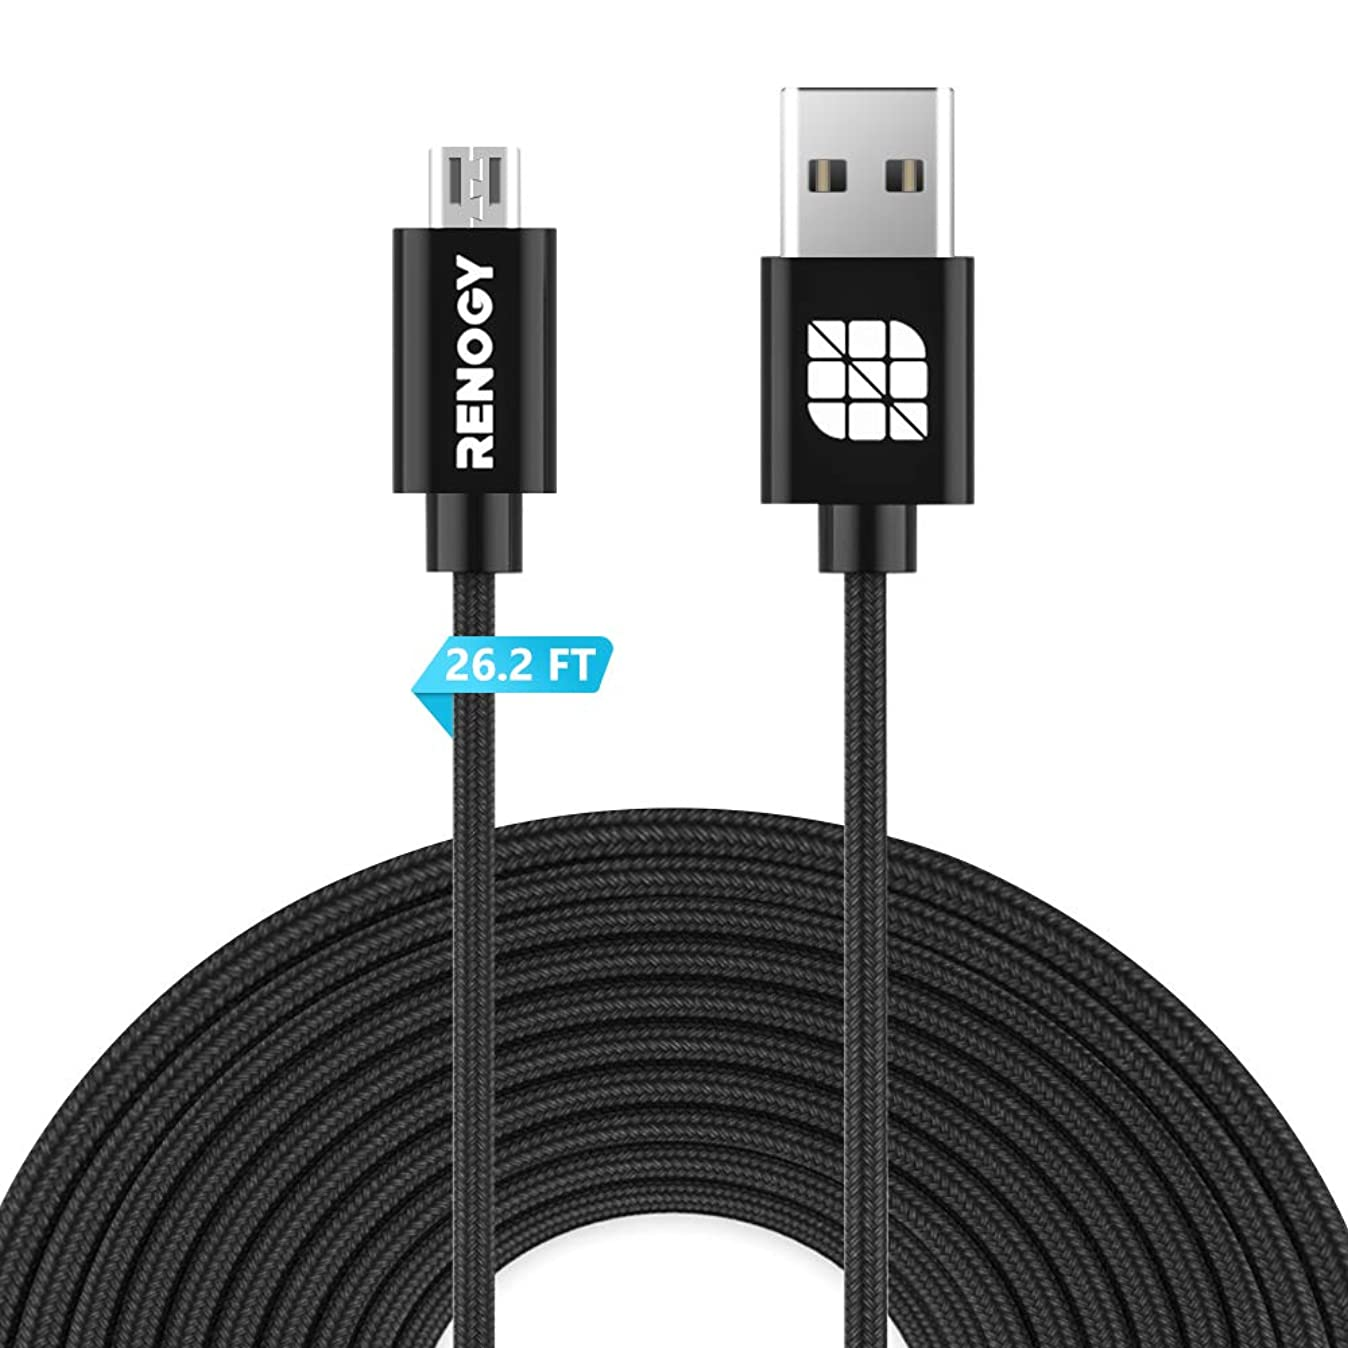 Renogy 26.2ft Power Extension Cable Nylon for WyzeCam, Wyze Cam Pan, Yi Camera, NestCam Indoor, Netvue, Furbo Dog, Amazon Cloud Cam, USB to Micro USB Charging Cord for Security Cam with Wire Clips r4237066678